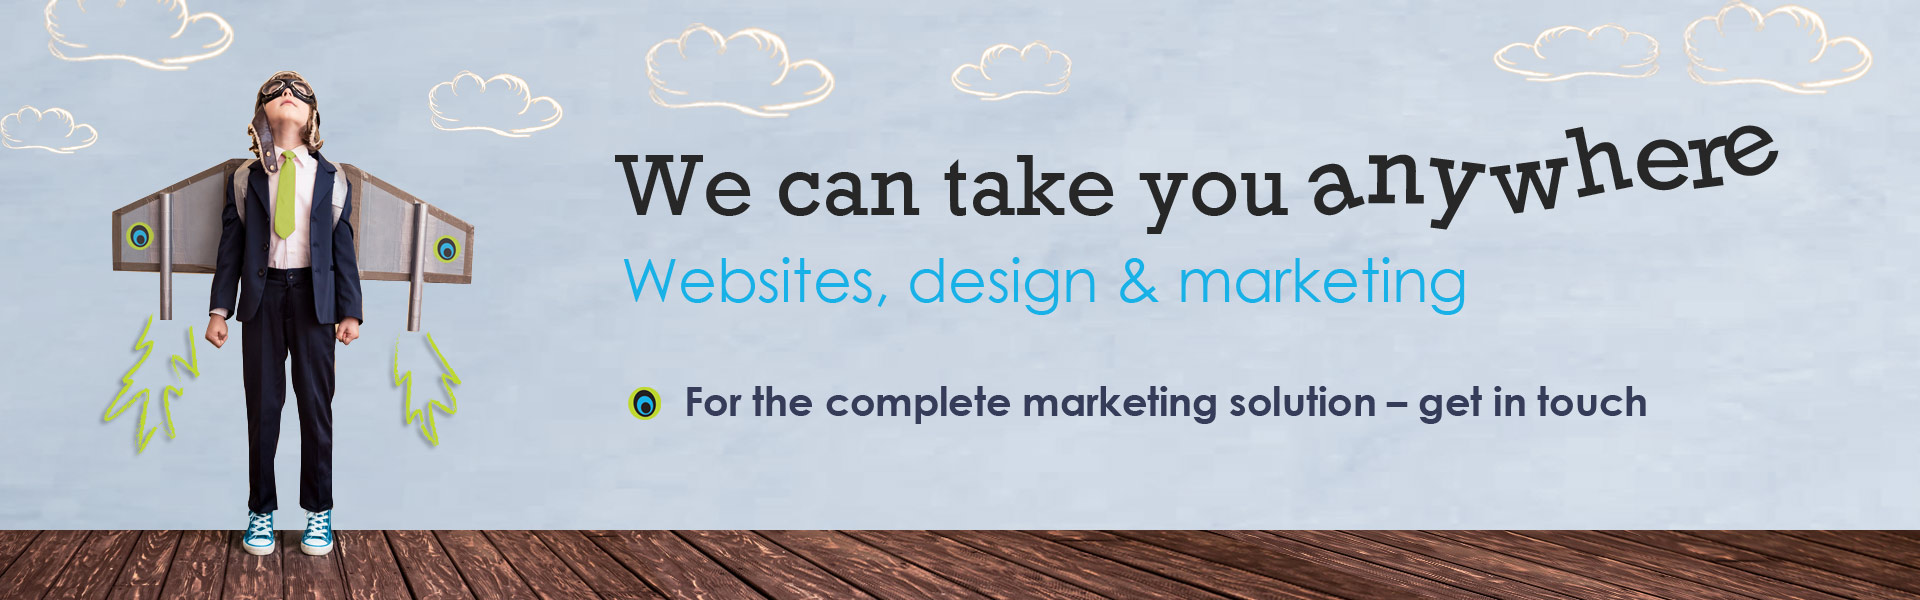 Marketing Zone: Websites, design & marketing